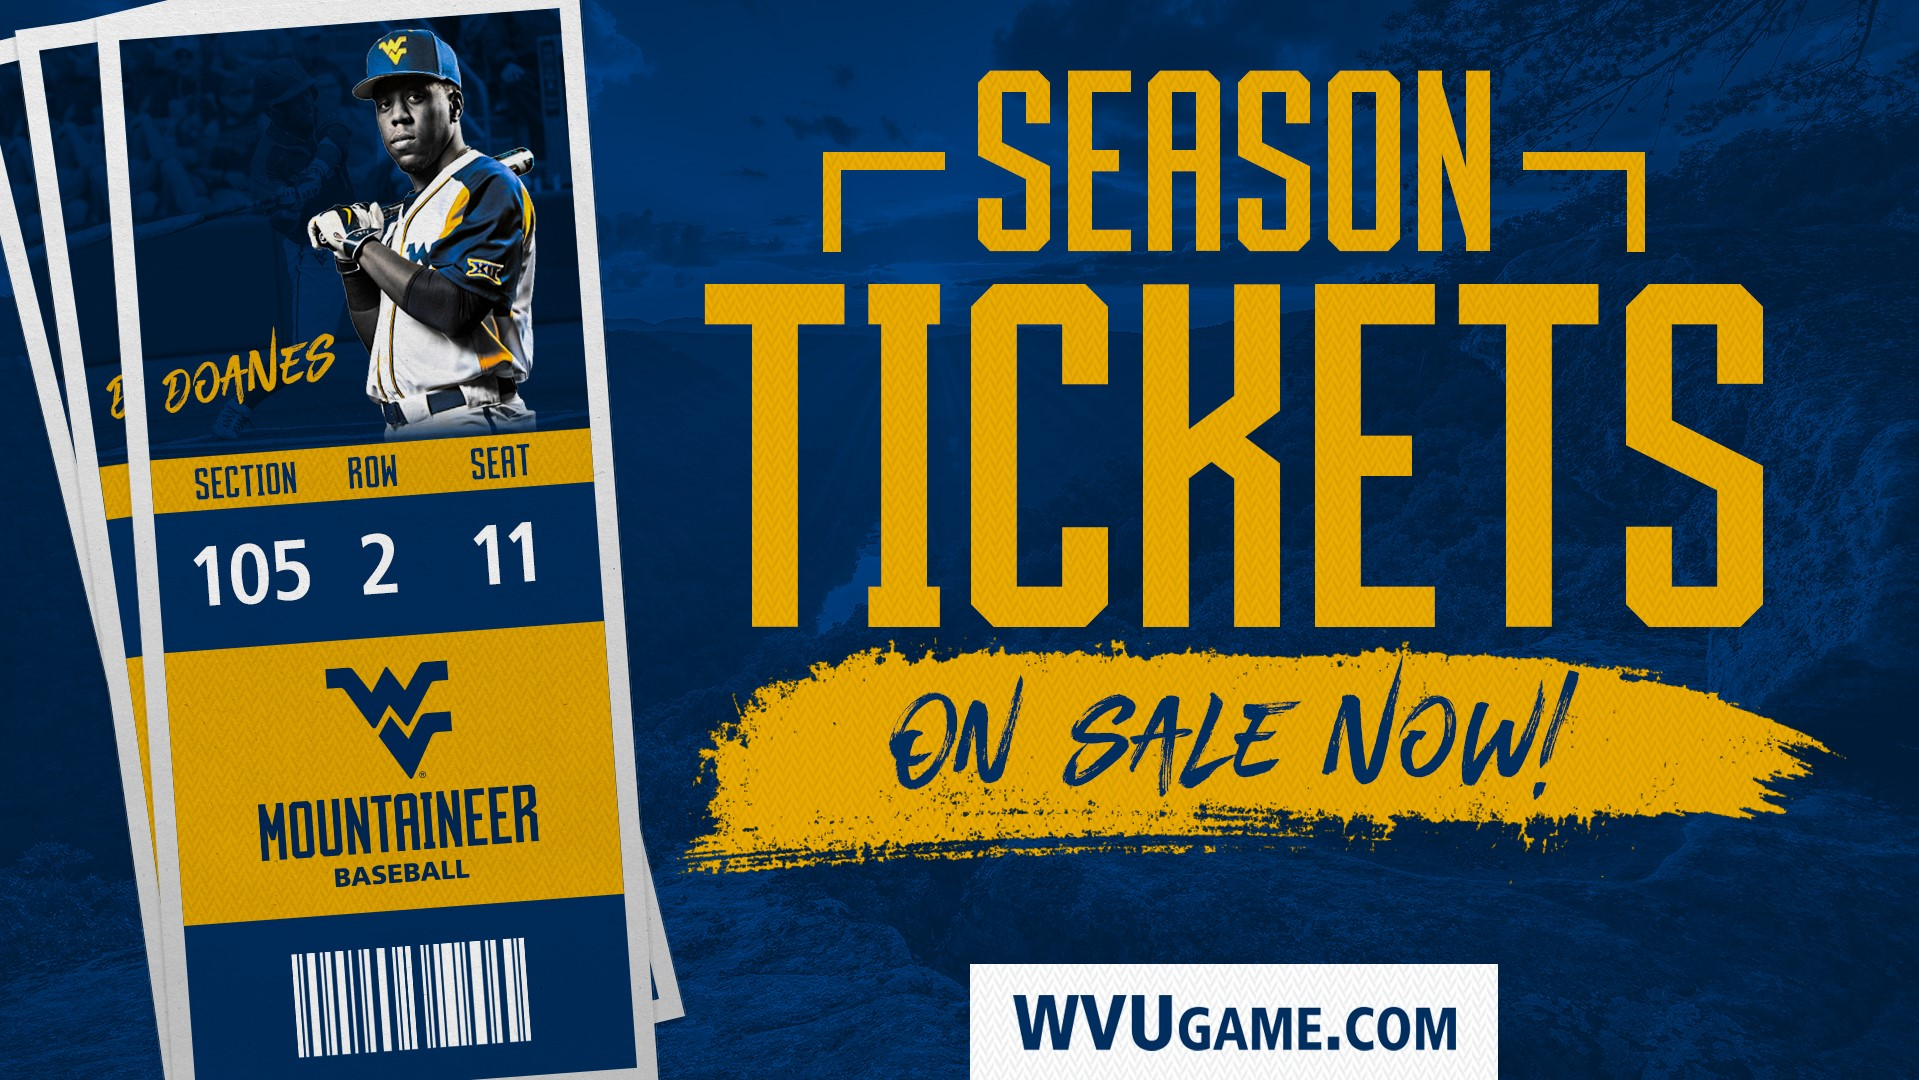 Season Tickets, Mini-Packages on Sale Now